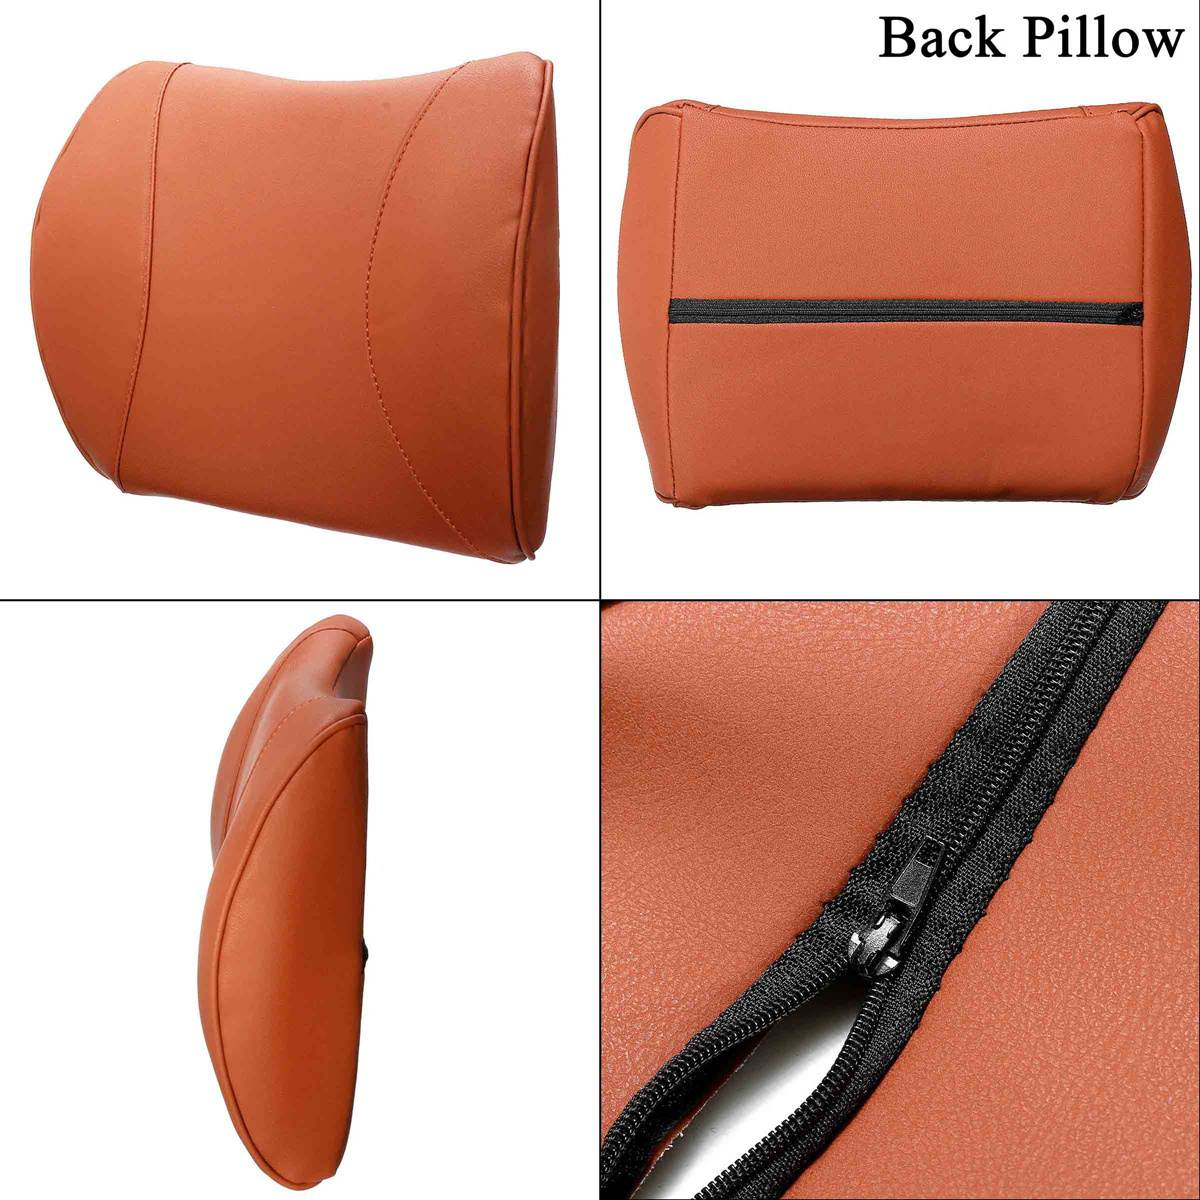 Removable Lumbar Pillow for Car Made with High Density Memory foam and PU Leather for Back Pain relief 14